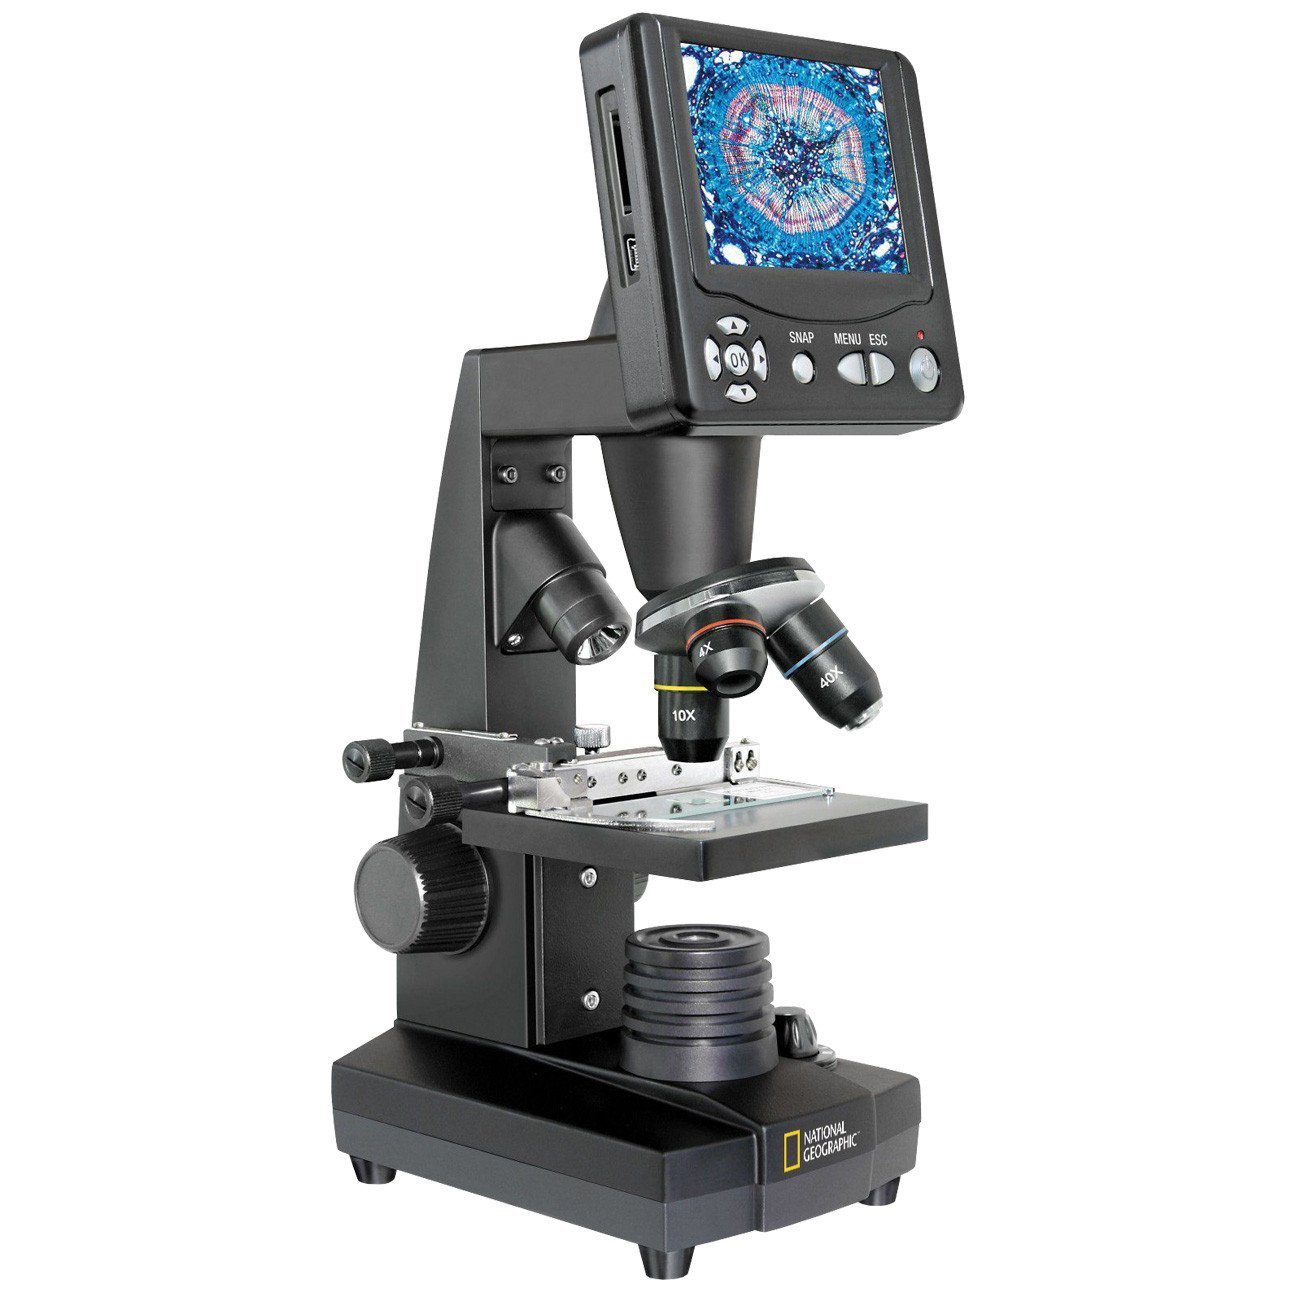 National Geographic 40X-1600X LCD Microscope, 80-10301 by NATIONAL GEOGRAPHIC